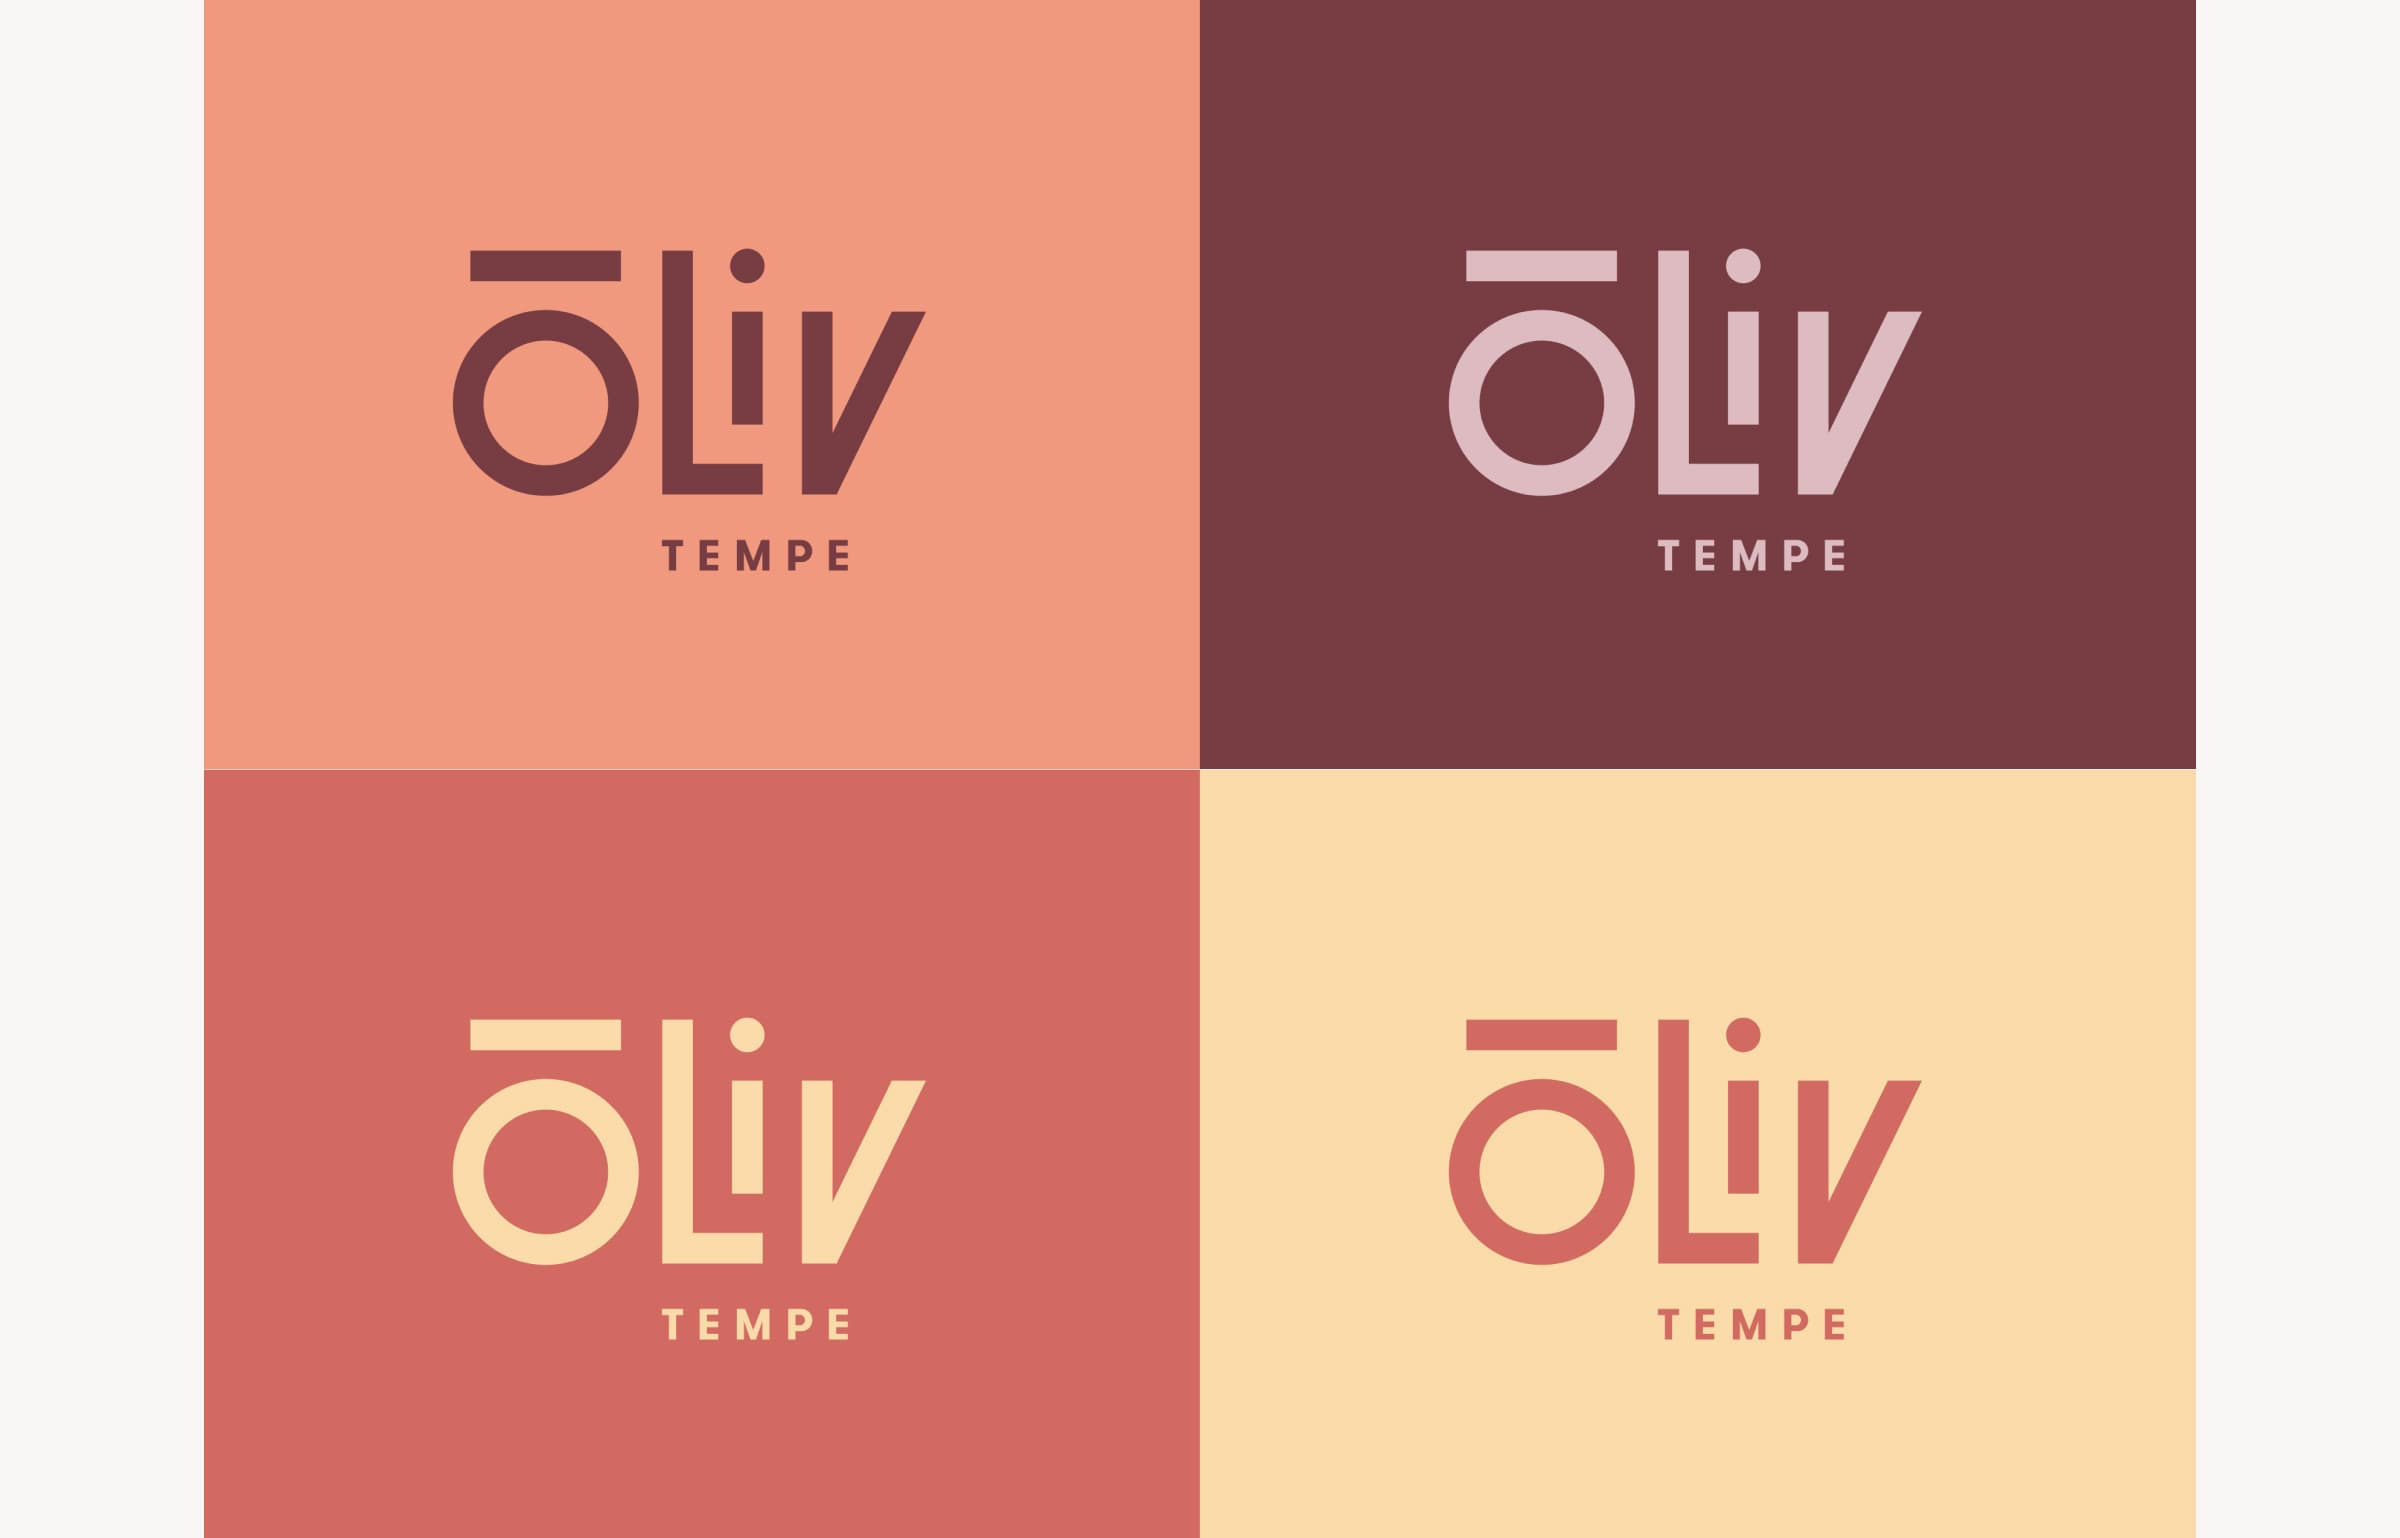 A image showing how ōLiv's logo and color scheme is localized for the Tempe, Arizona property.